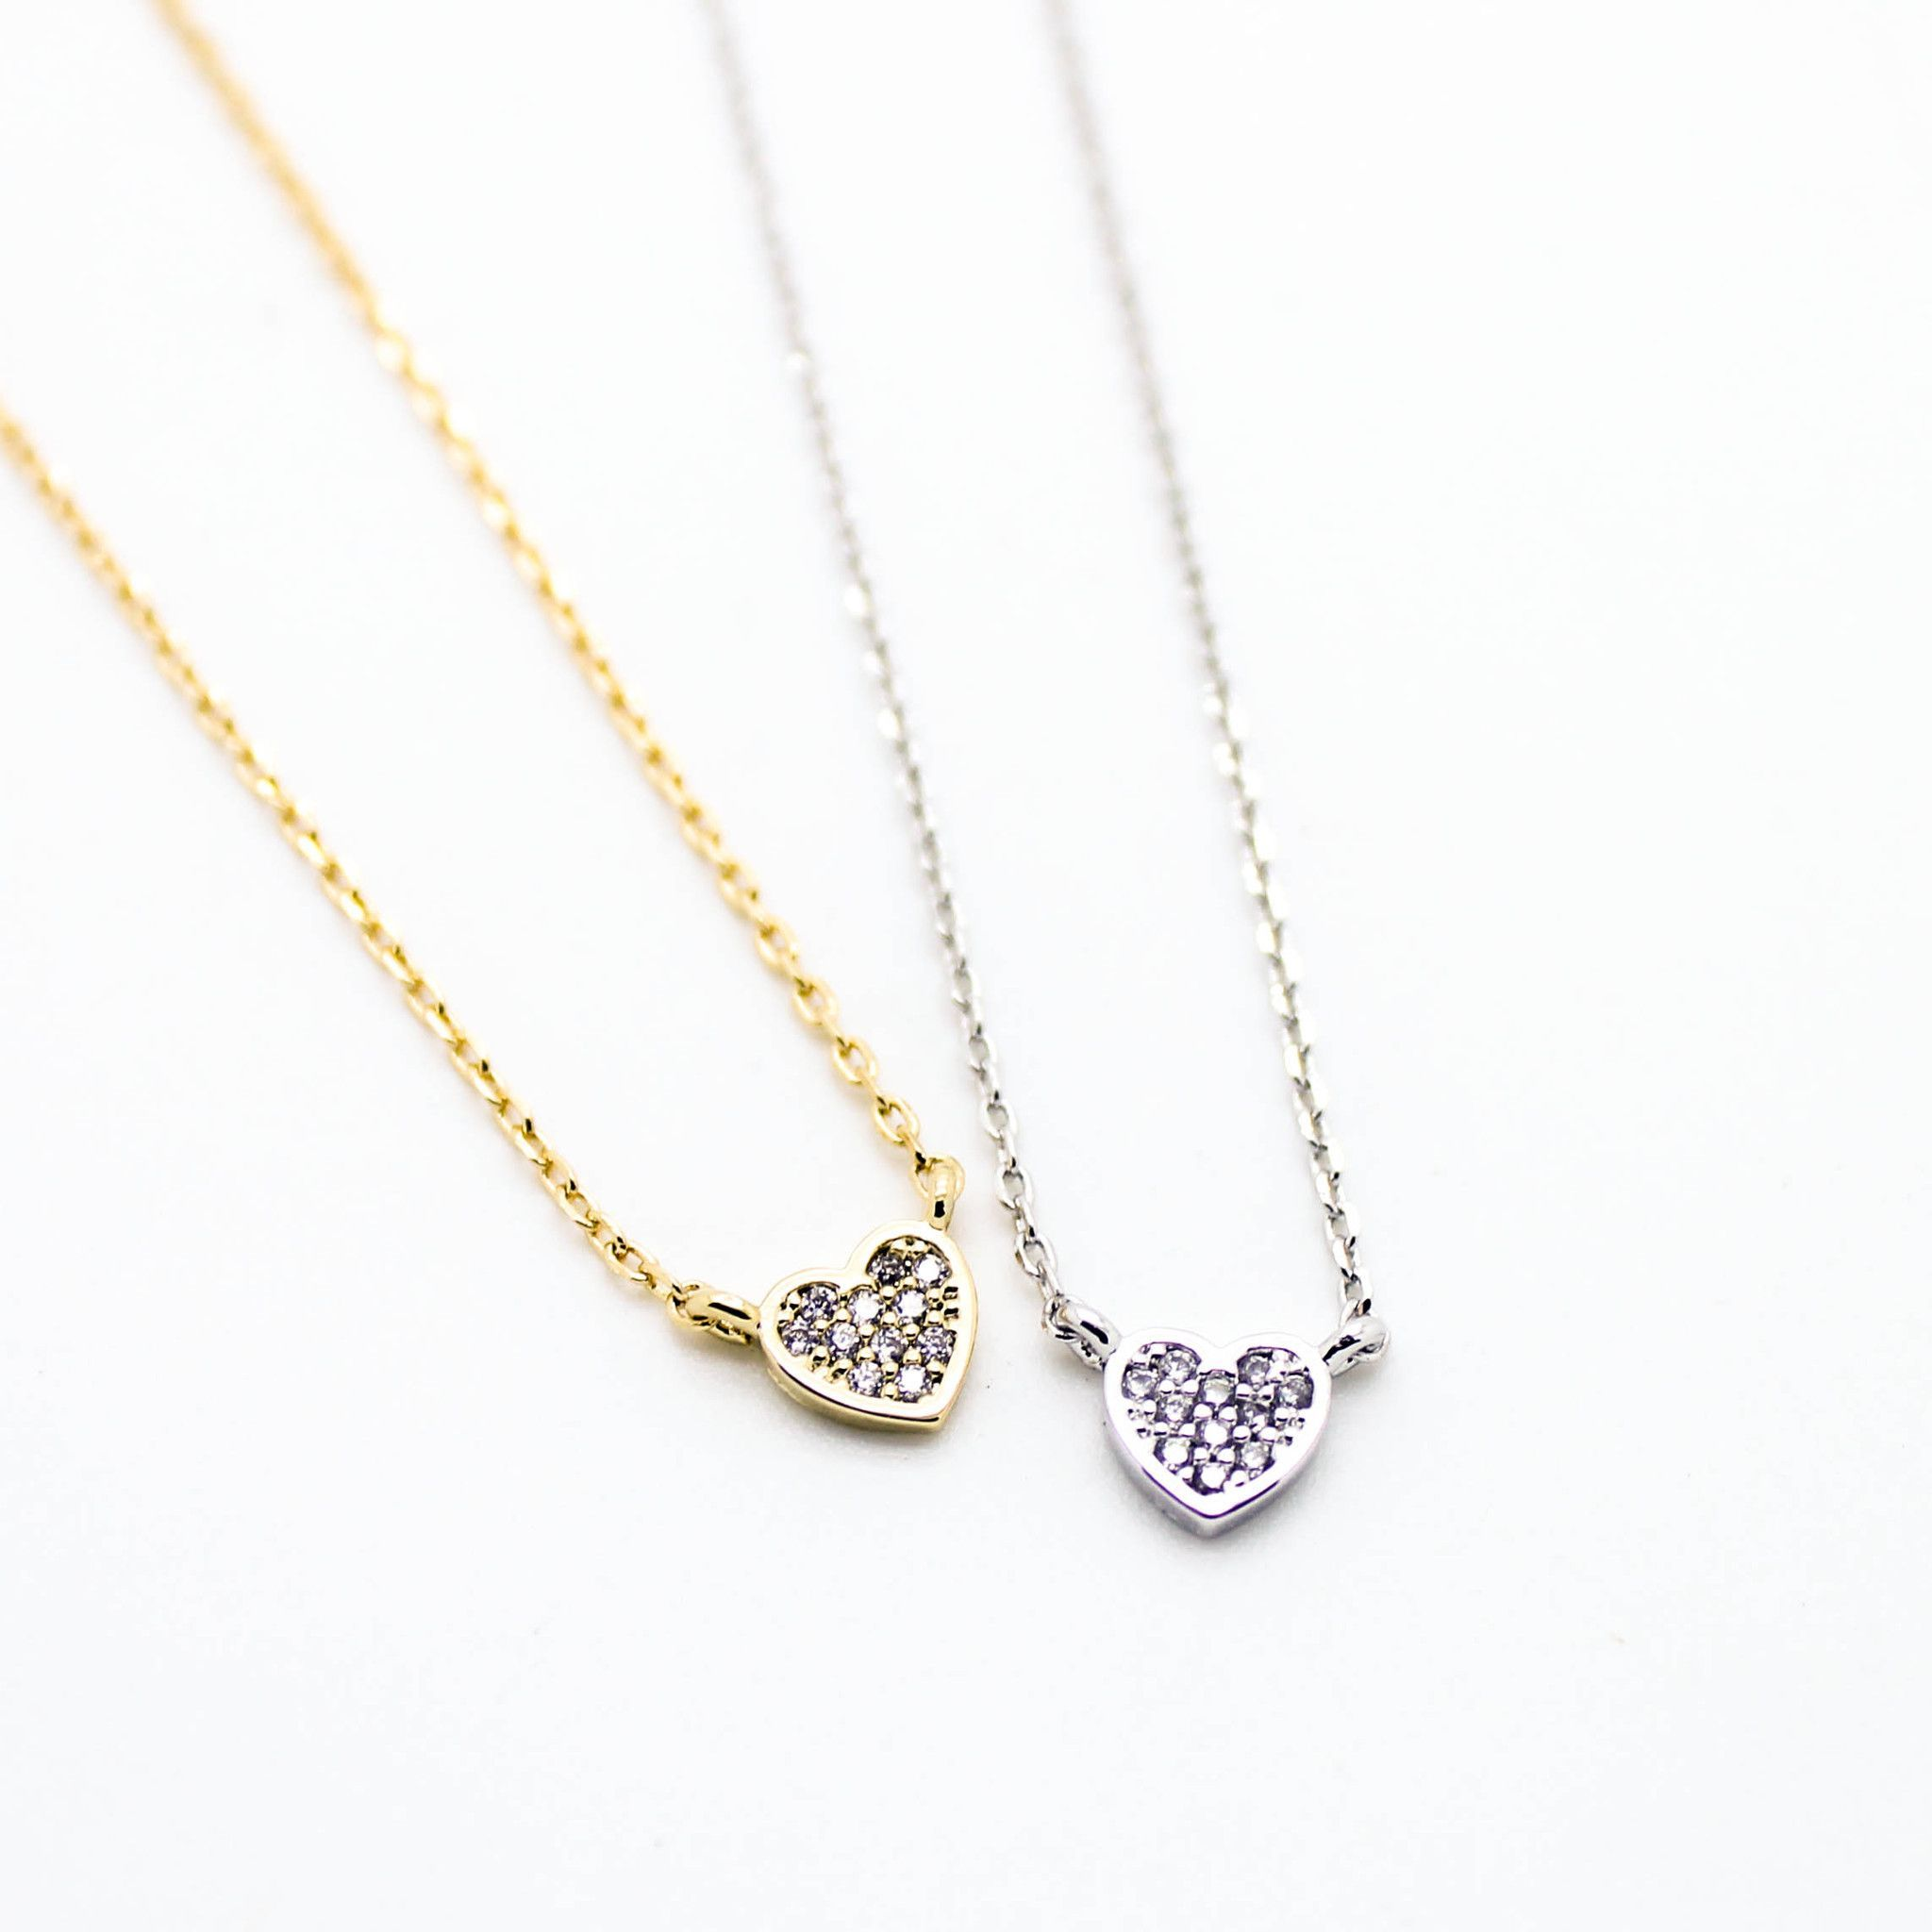 mini products with heart necklace borboleta medallion plain